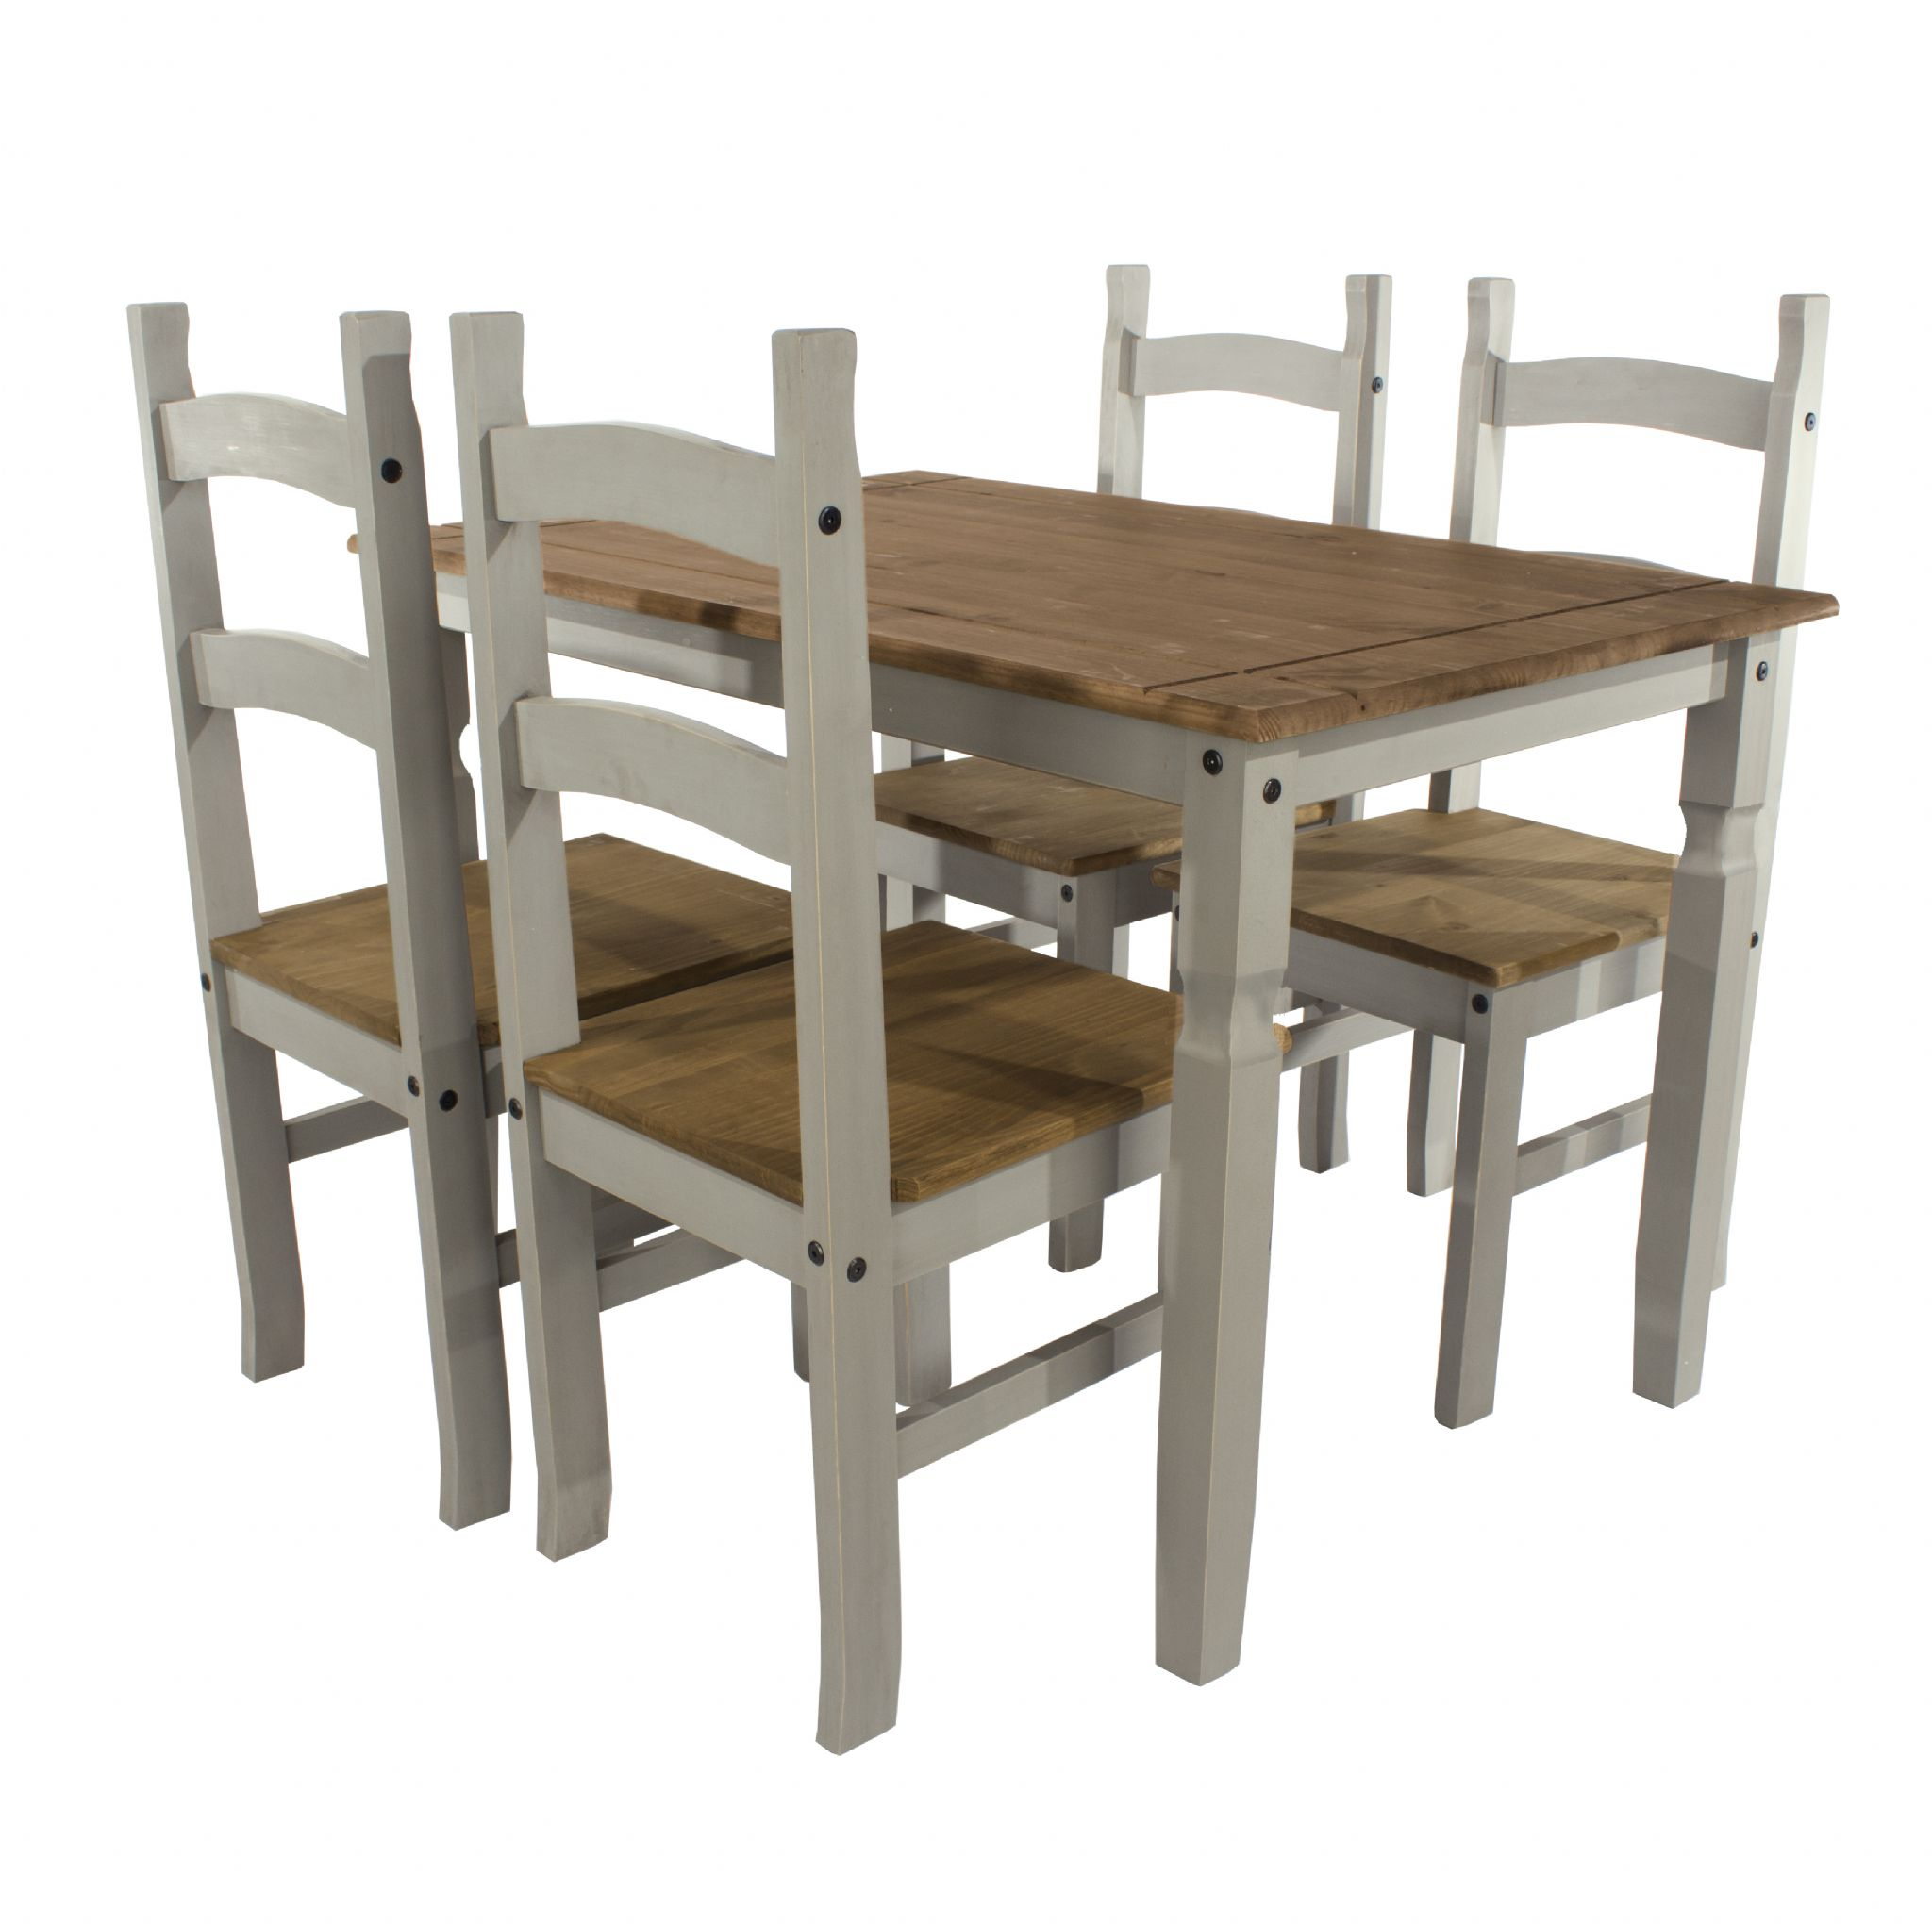 grey wash dining table. Premium Corona Grey Wash Pine Dining Table And Chair Sets